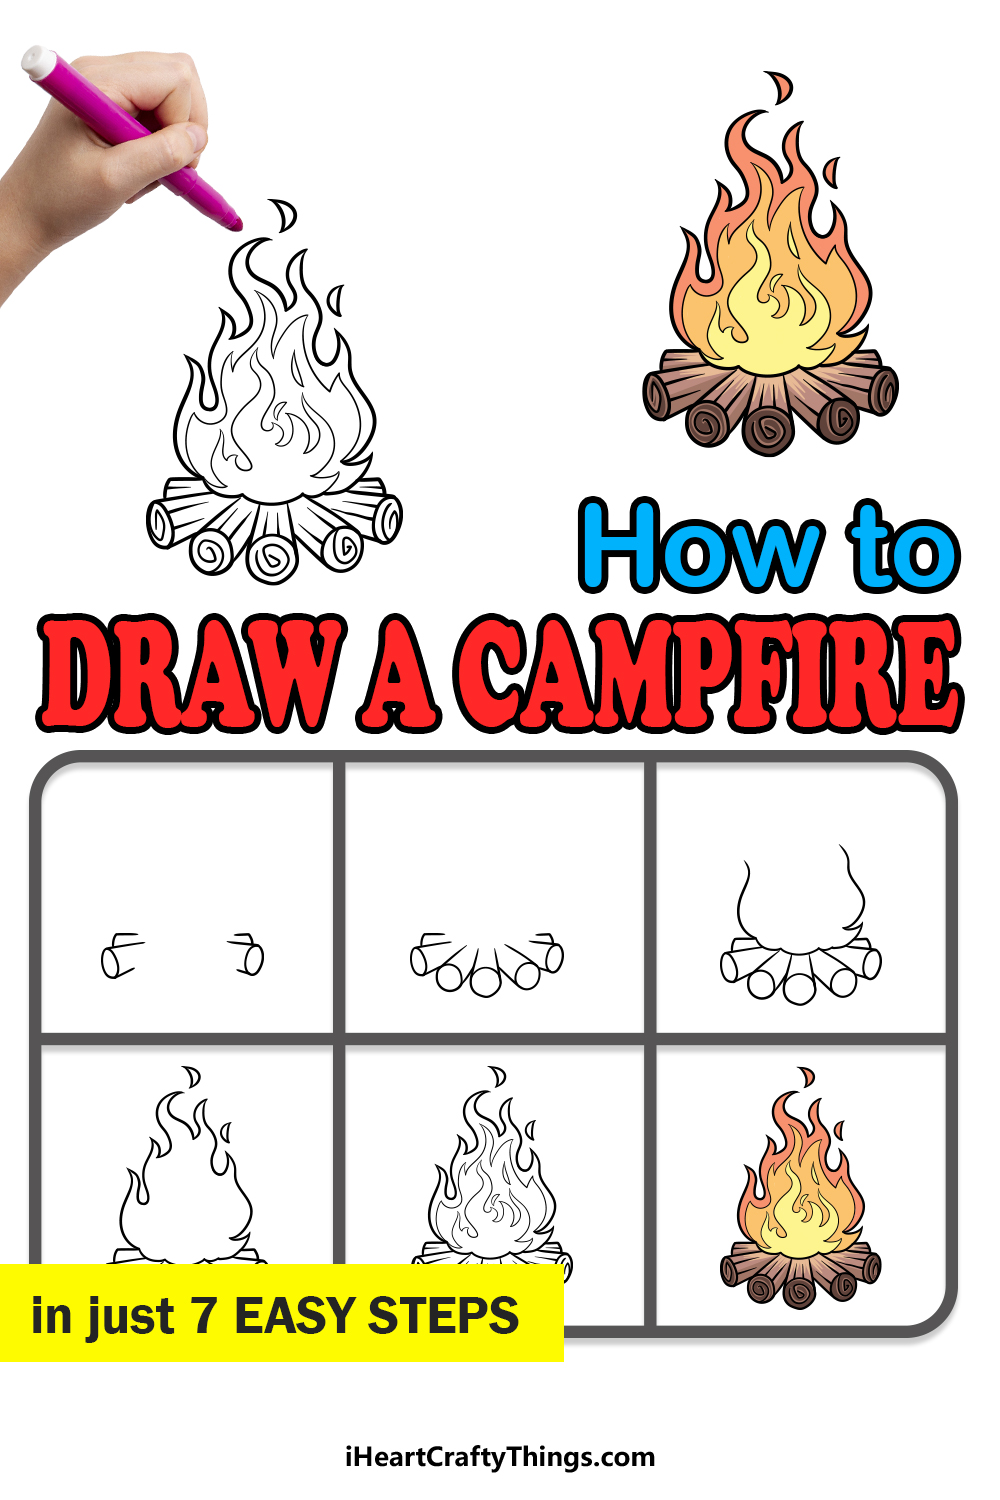 how to draw a campfire in 7 easy steps